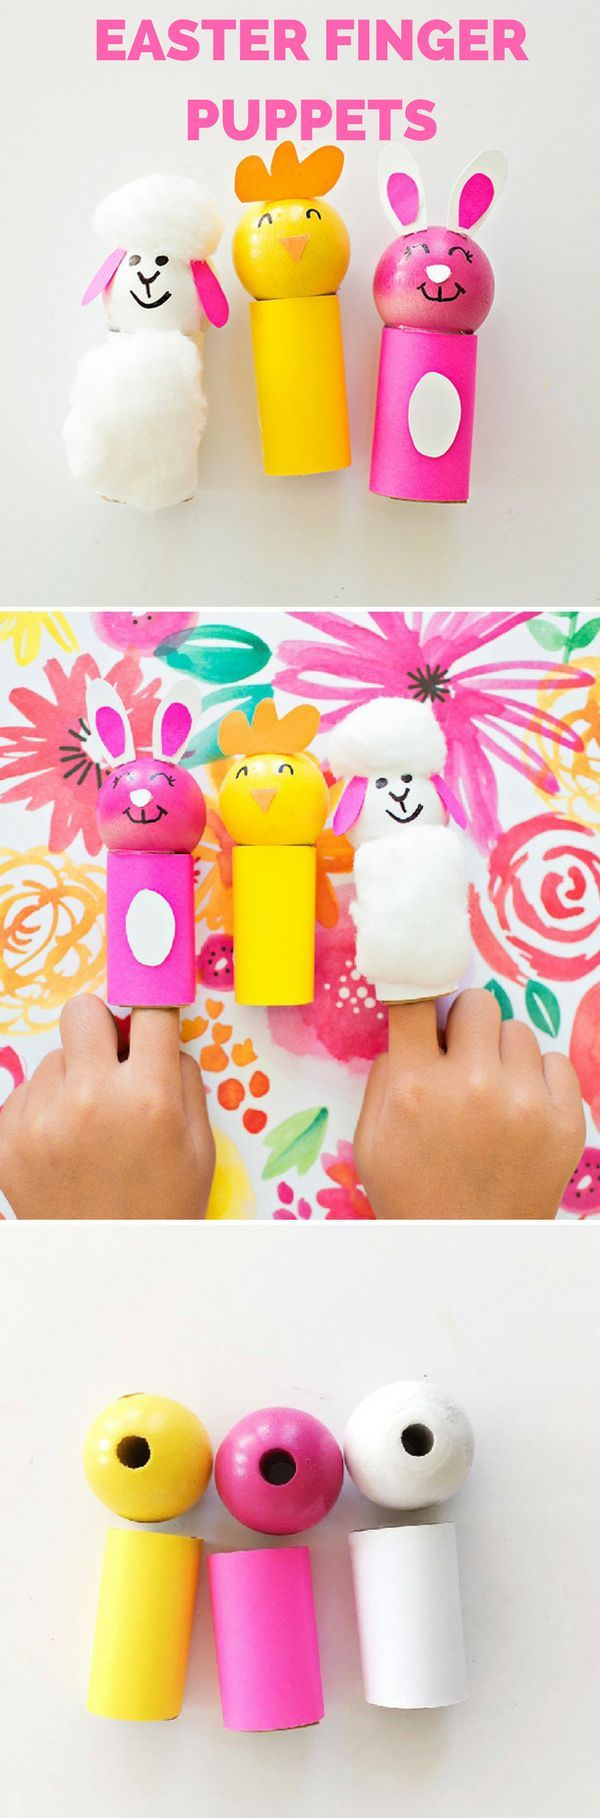 EASTER CHICK BUNNY AND SHEEP FINGER PUPPETS